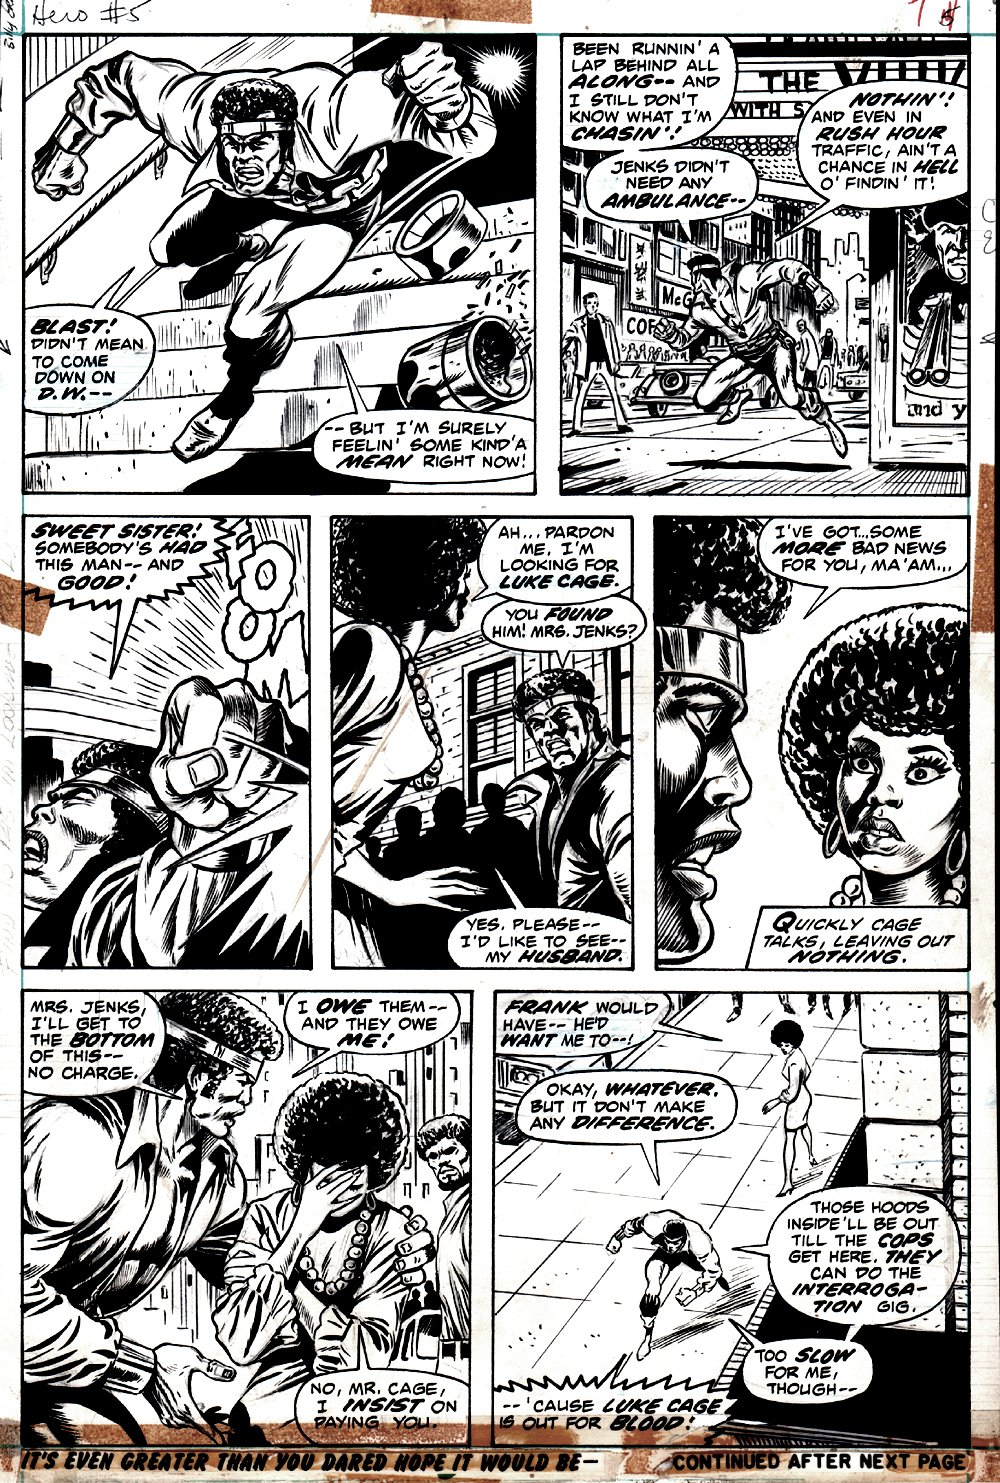 Hero for Hire #5 p 7 (FANTASTIC BILLY GRAHAM INKS, CAGE IN ALL 7 PANELS!) 1972